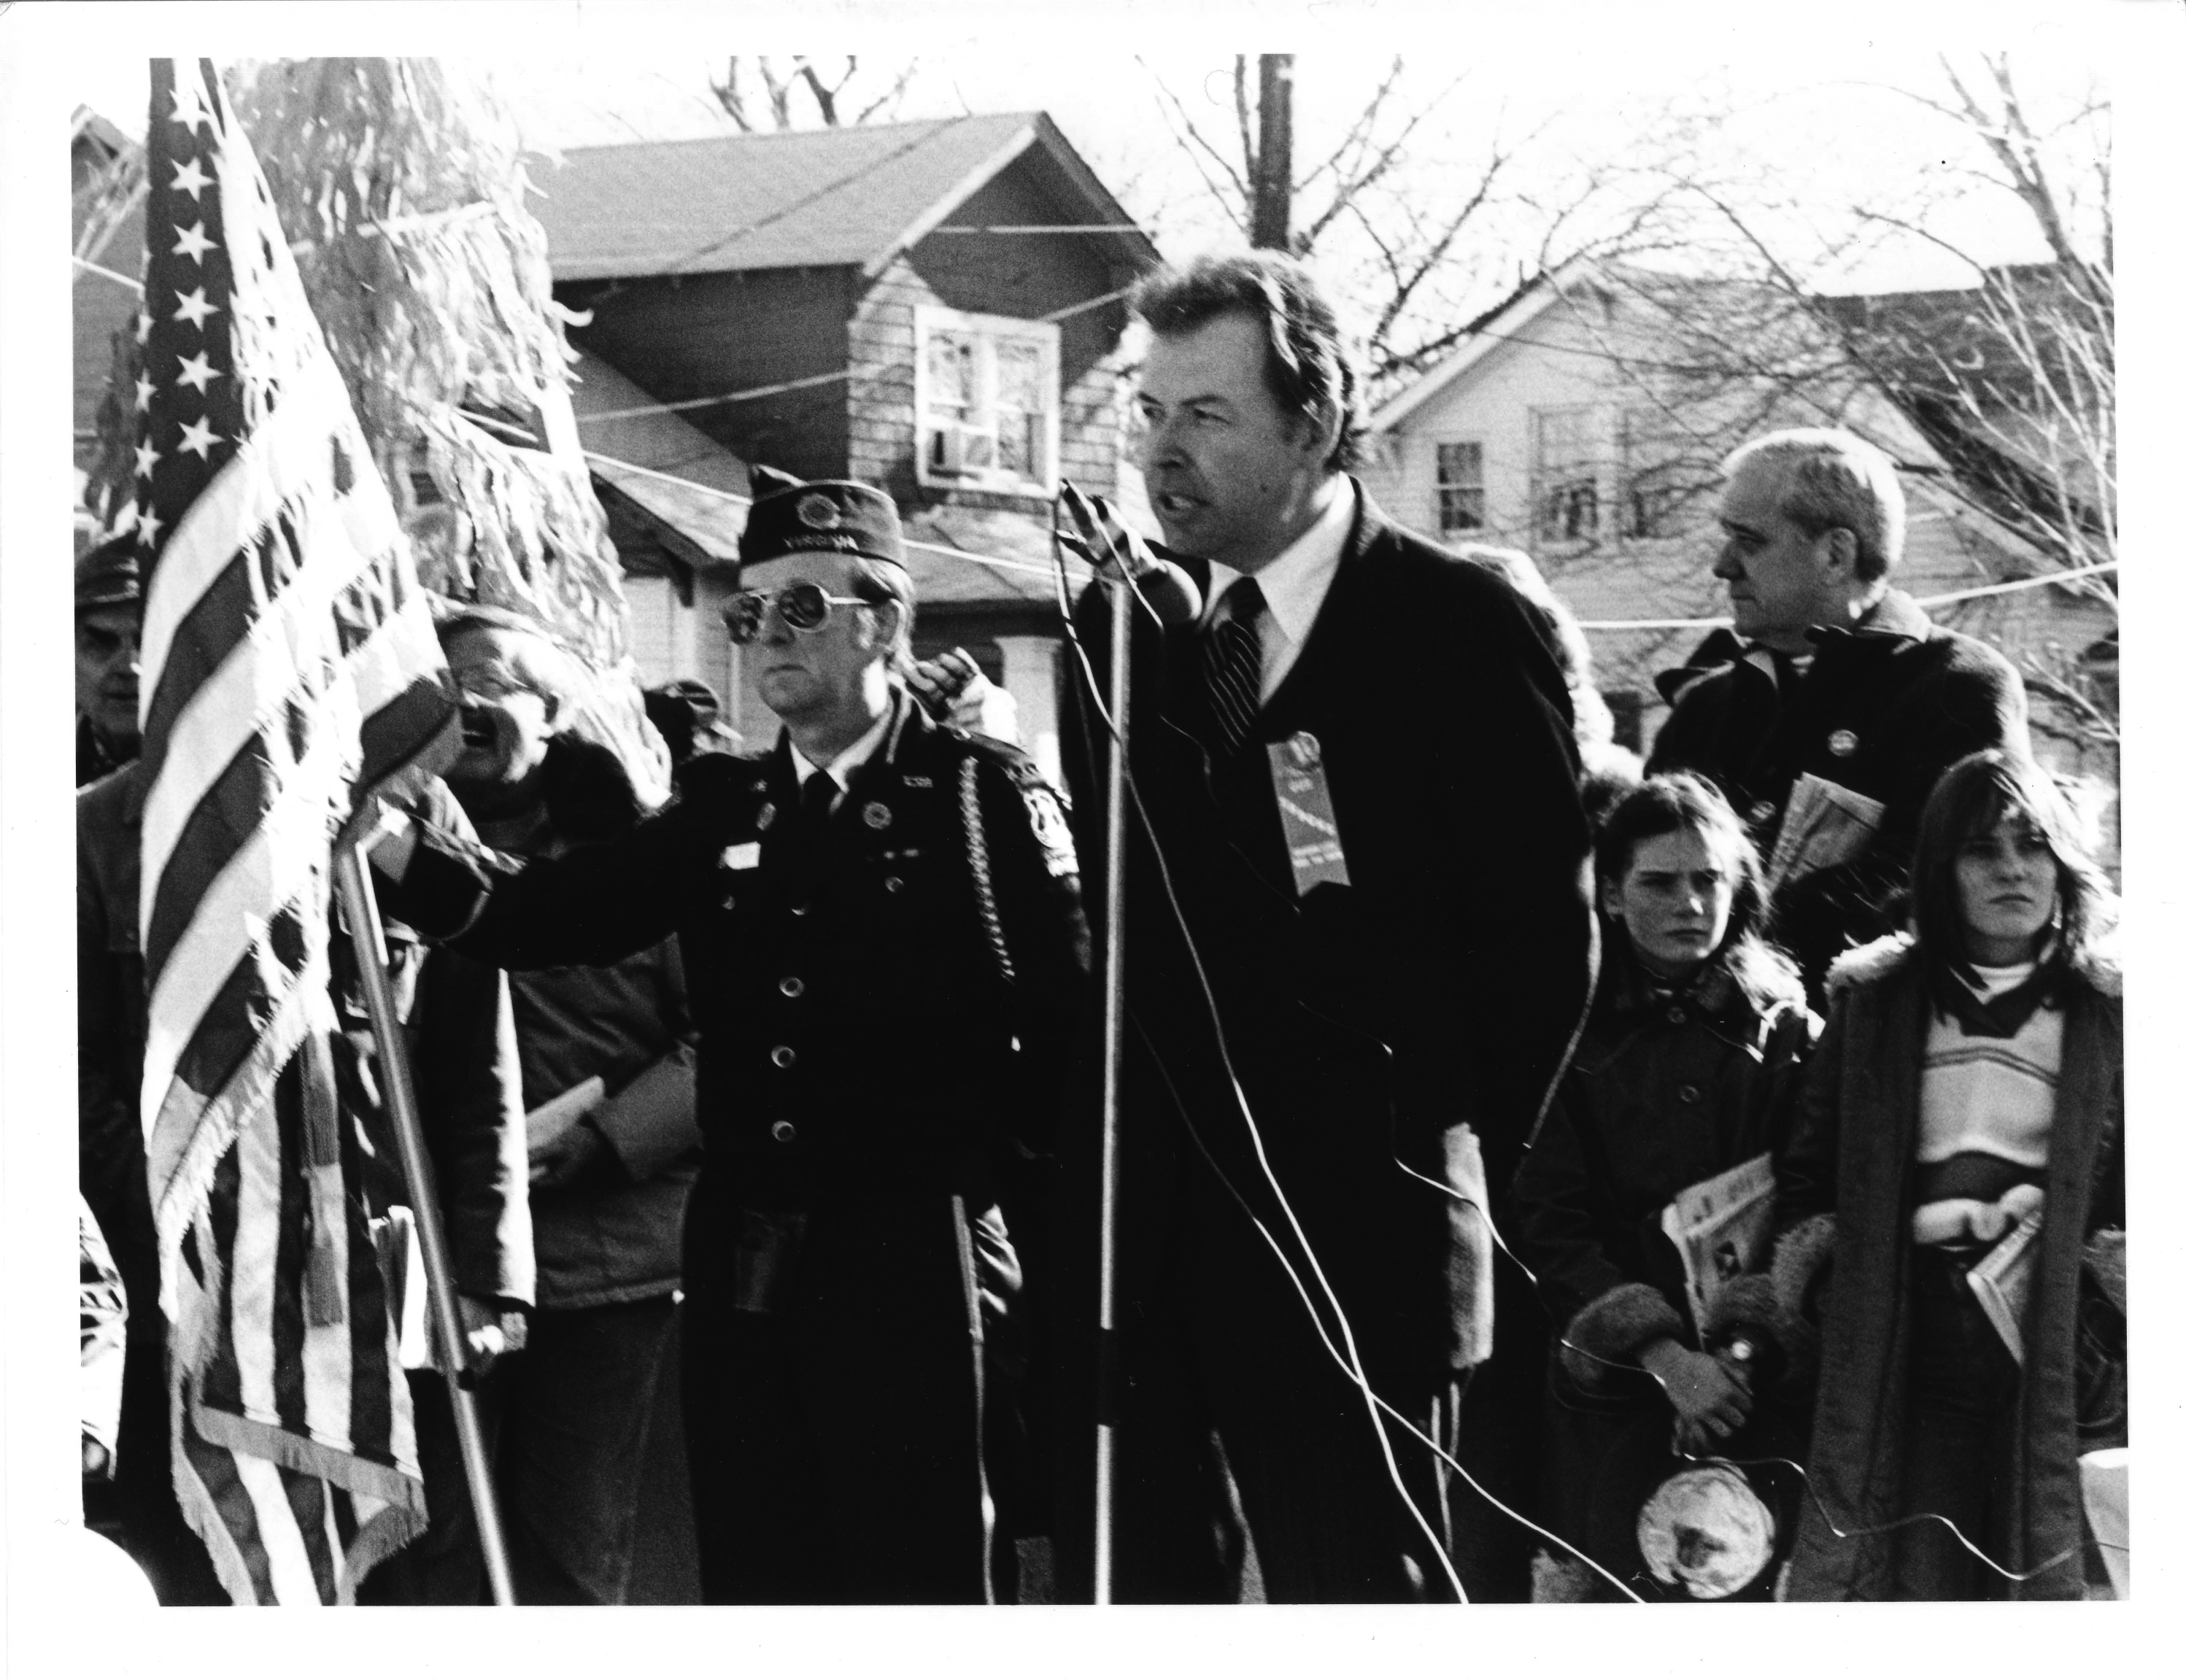 Dr. George W. Johnson speaking at the opening of the Virginia Square Metro Station, Arlington, Virginia, December 1, 1979